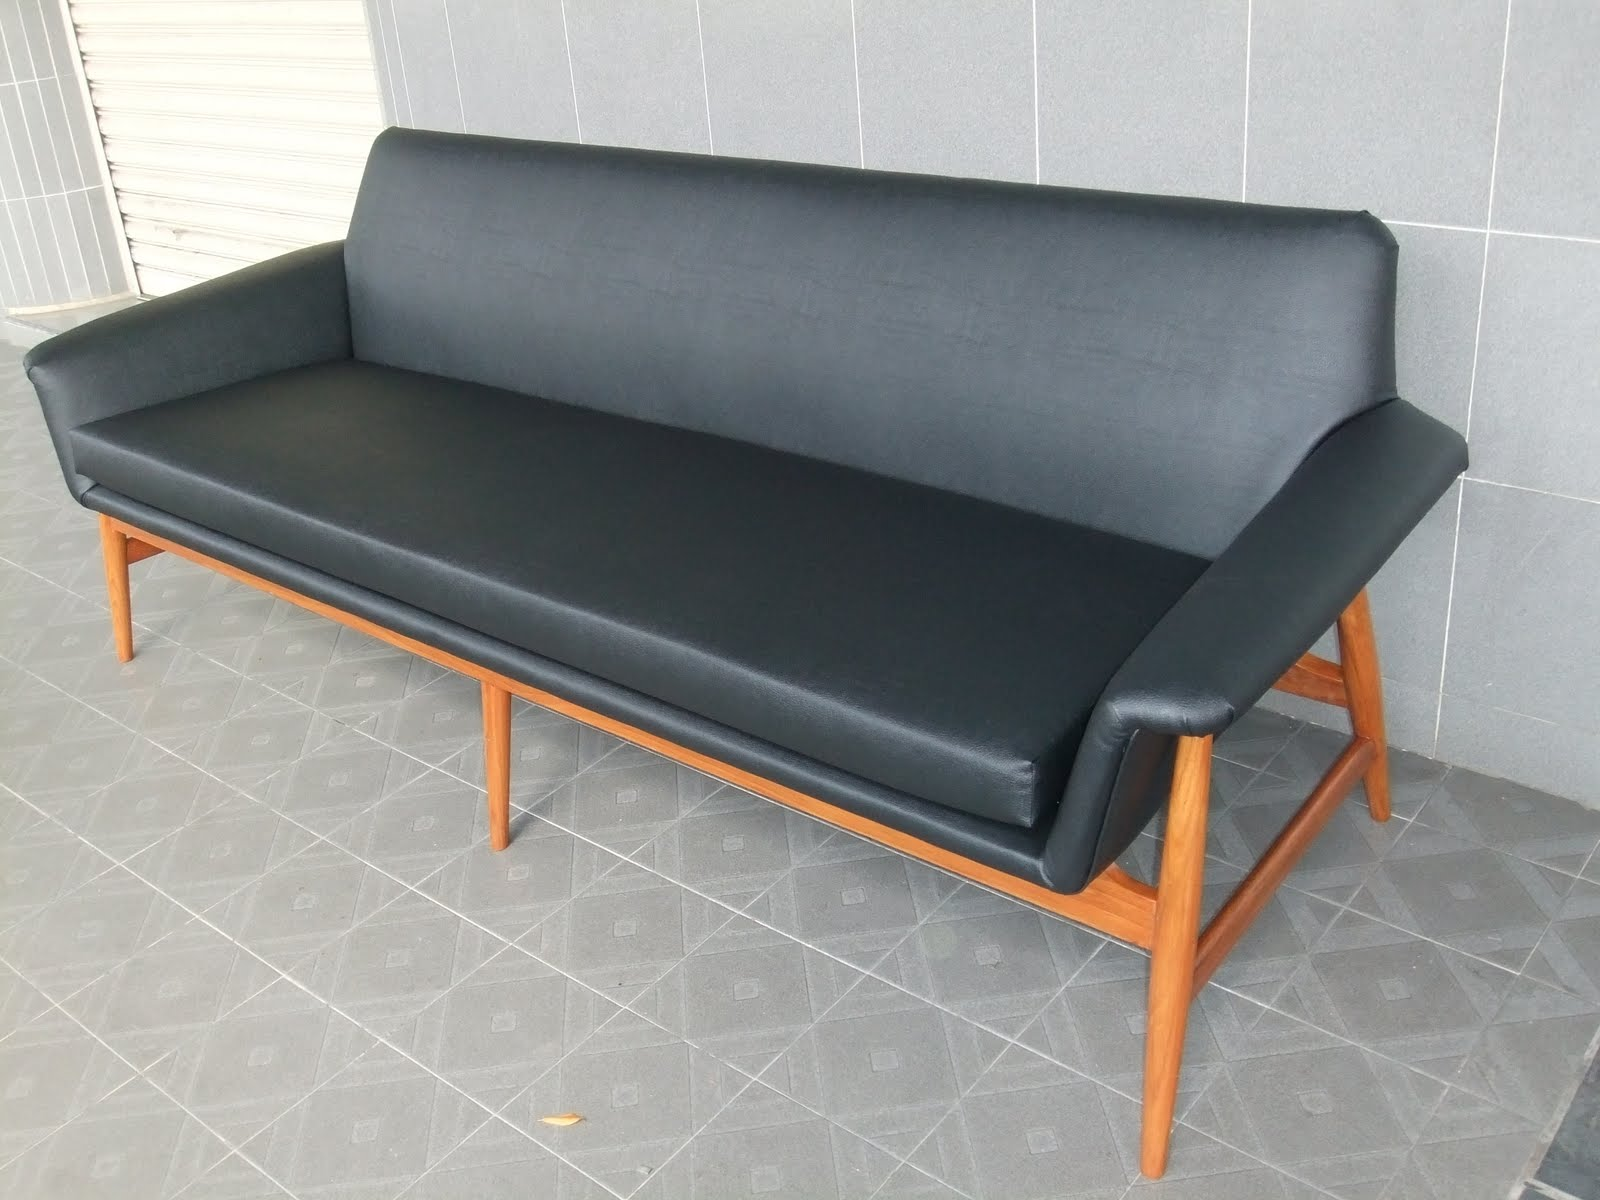 Retro Sofa Singapore Vintage Furniture Repaired Restored And Reupholstered